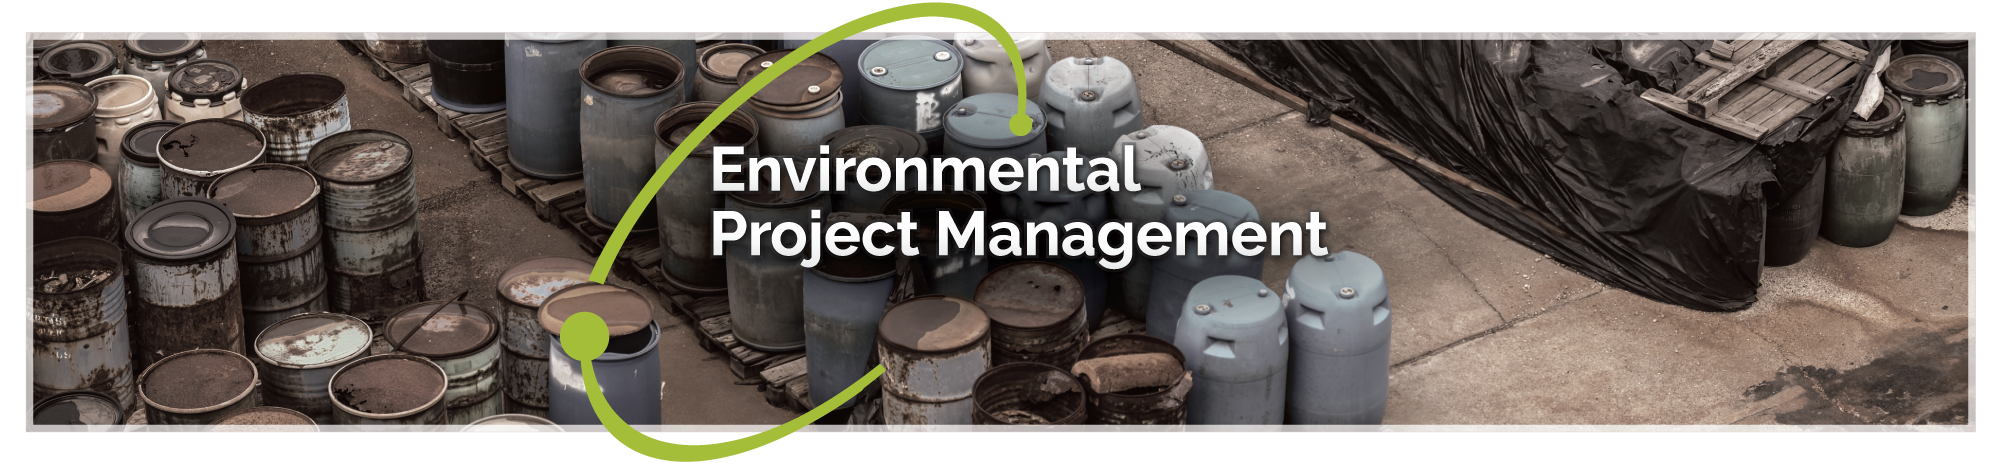 eag-environmental-project-management-main